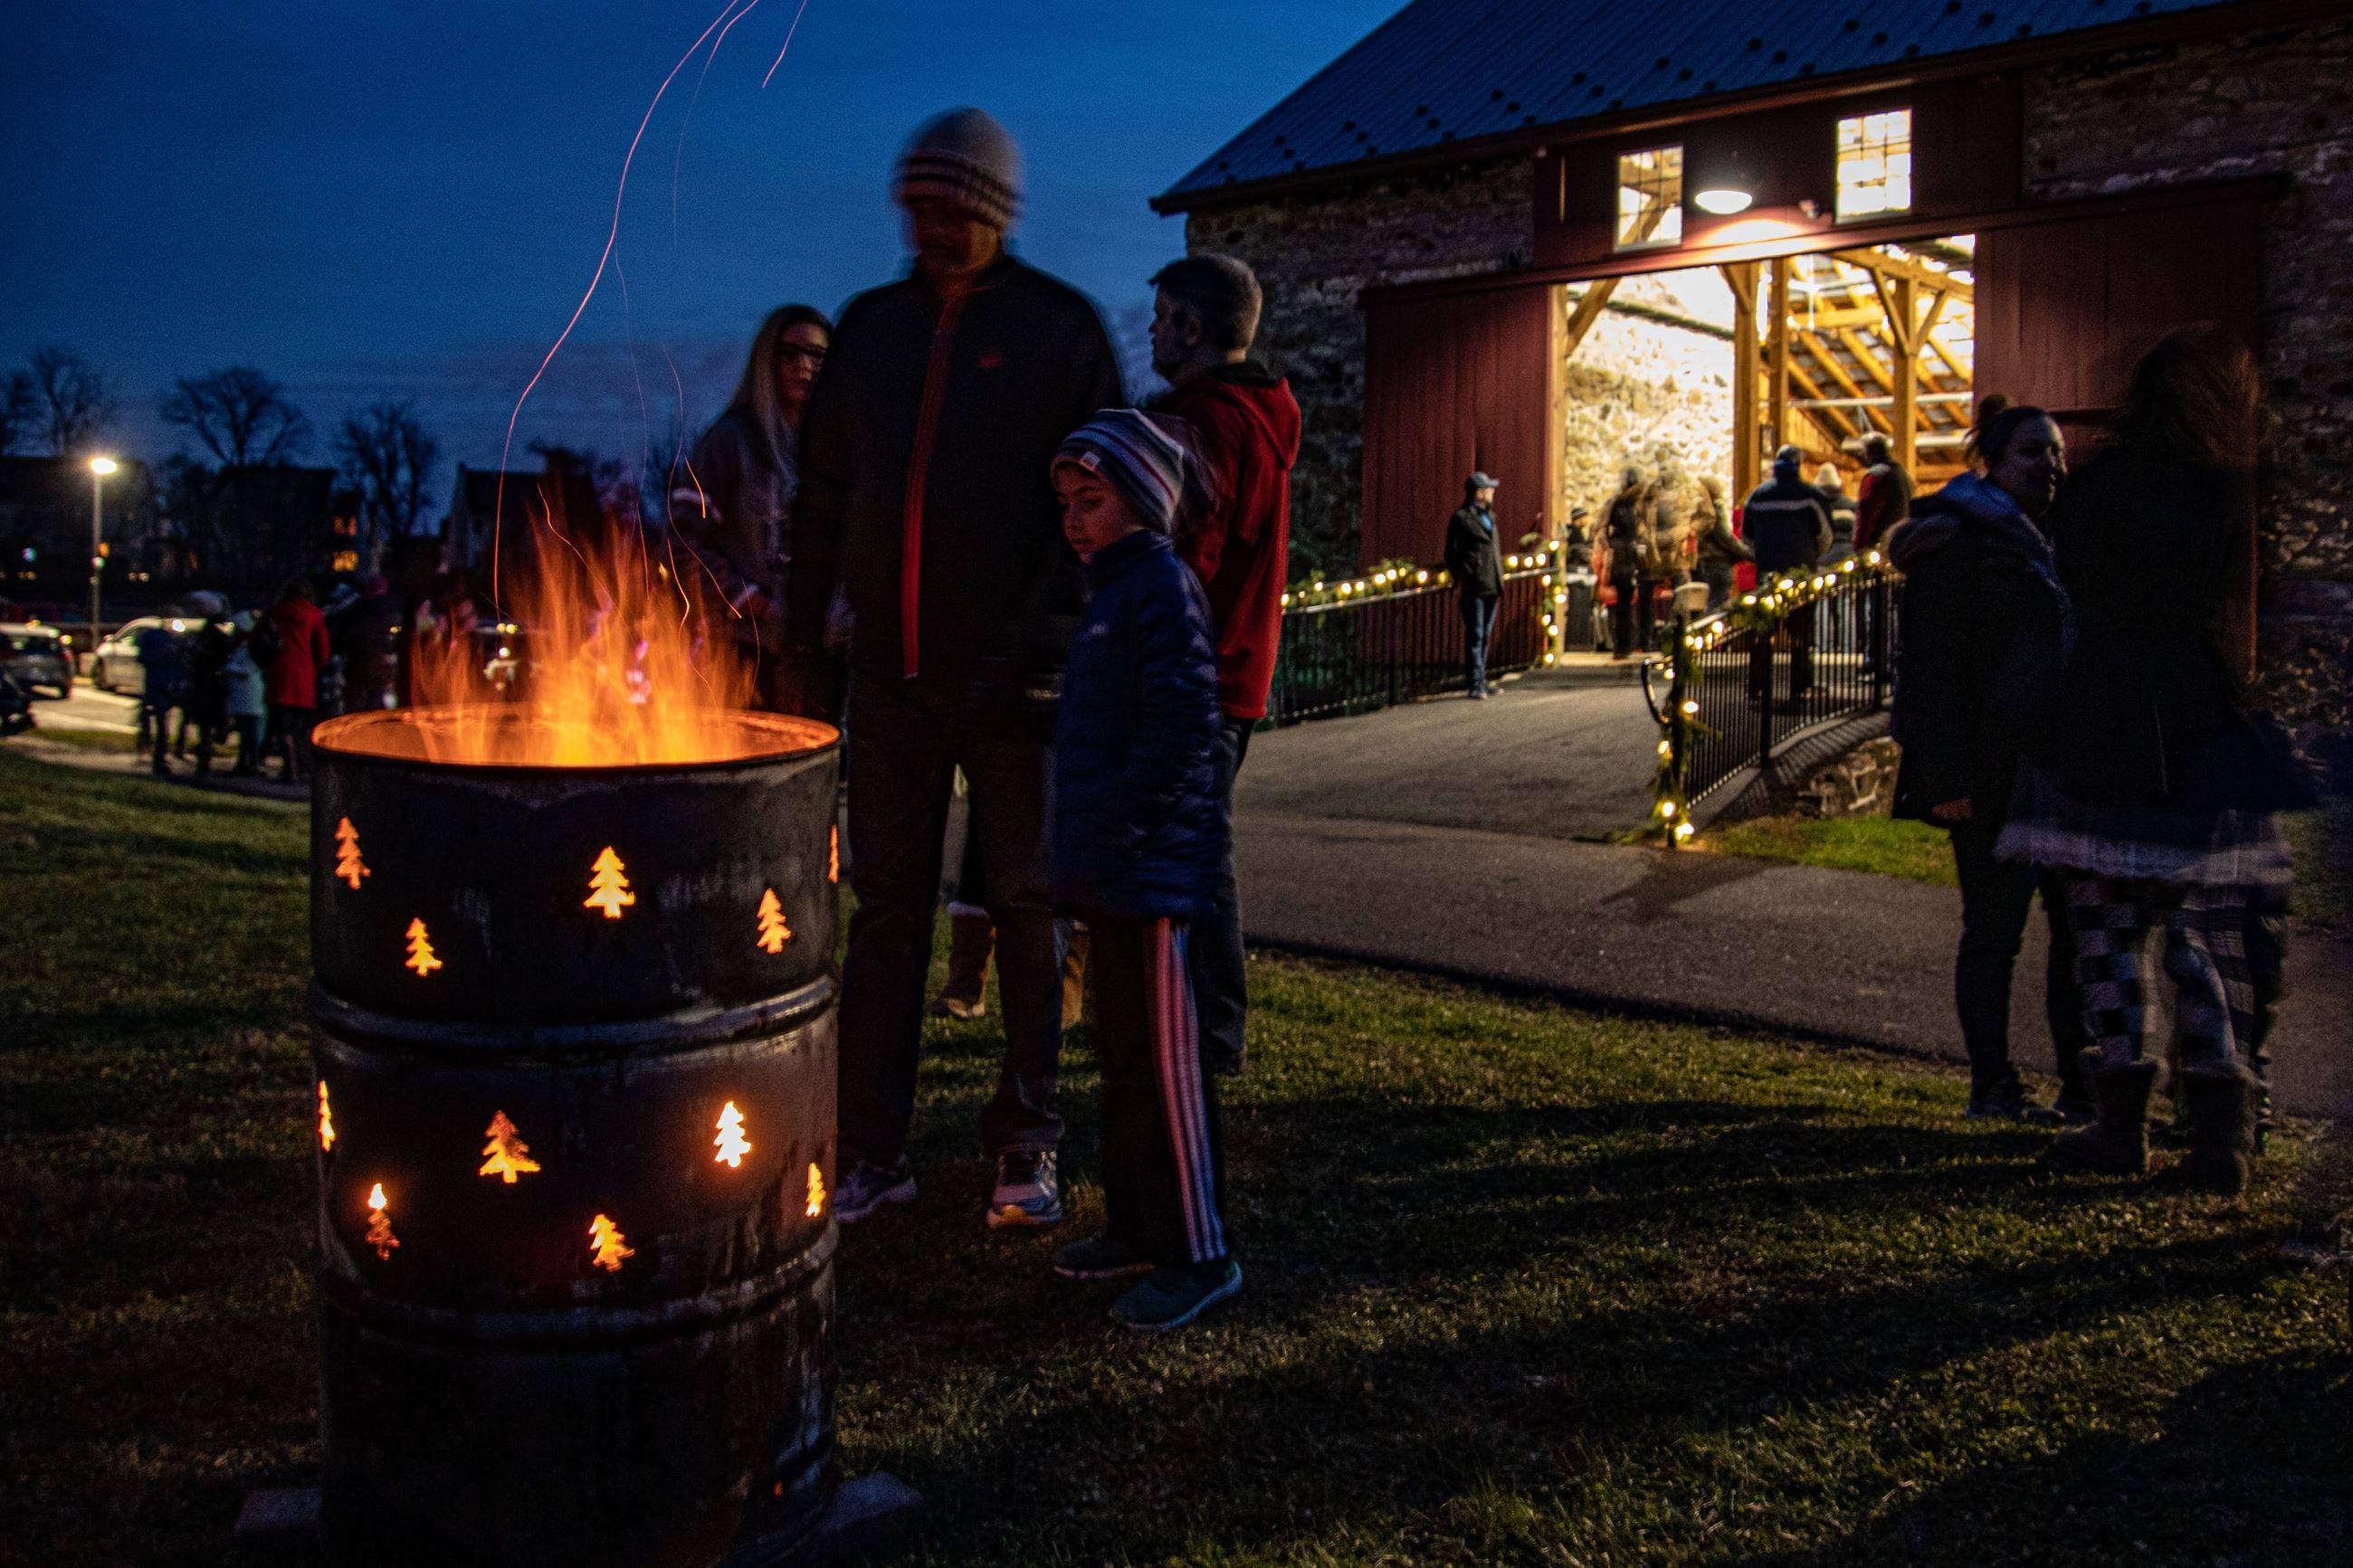 Upper Uwchlan Township Tree Lighting 2019 - photograph of people at festive fire barrel